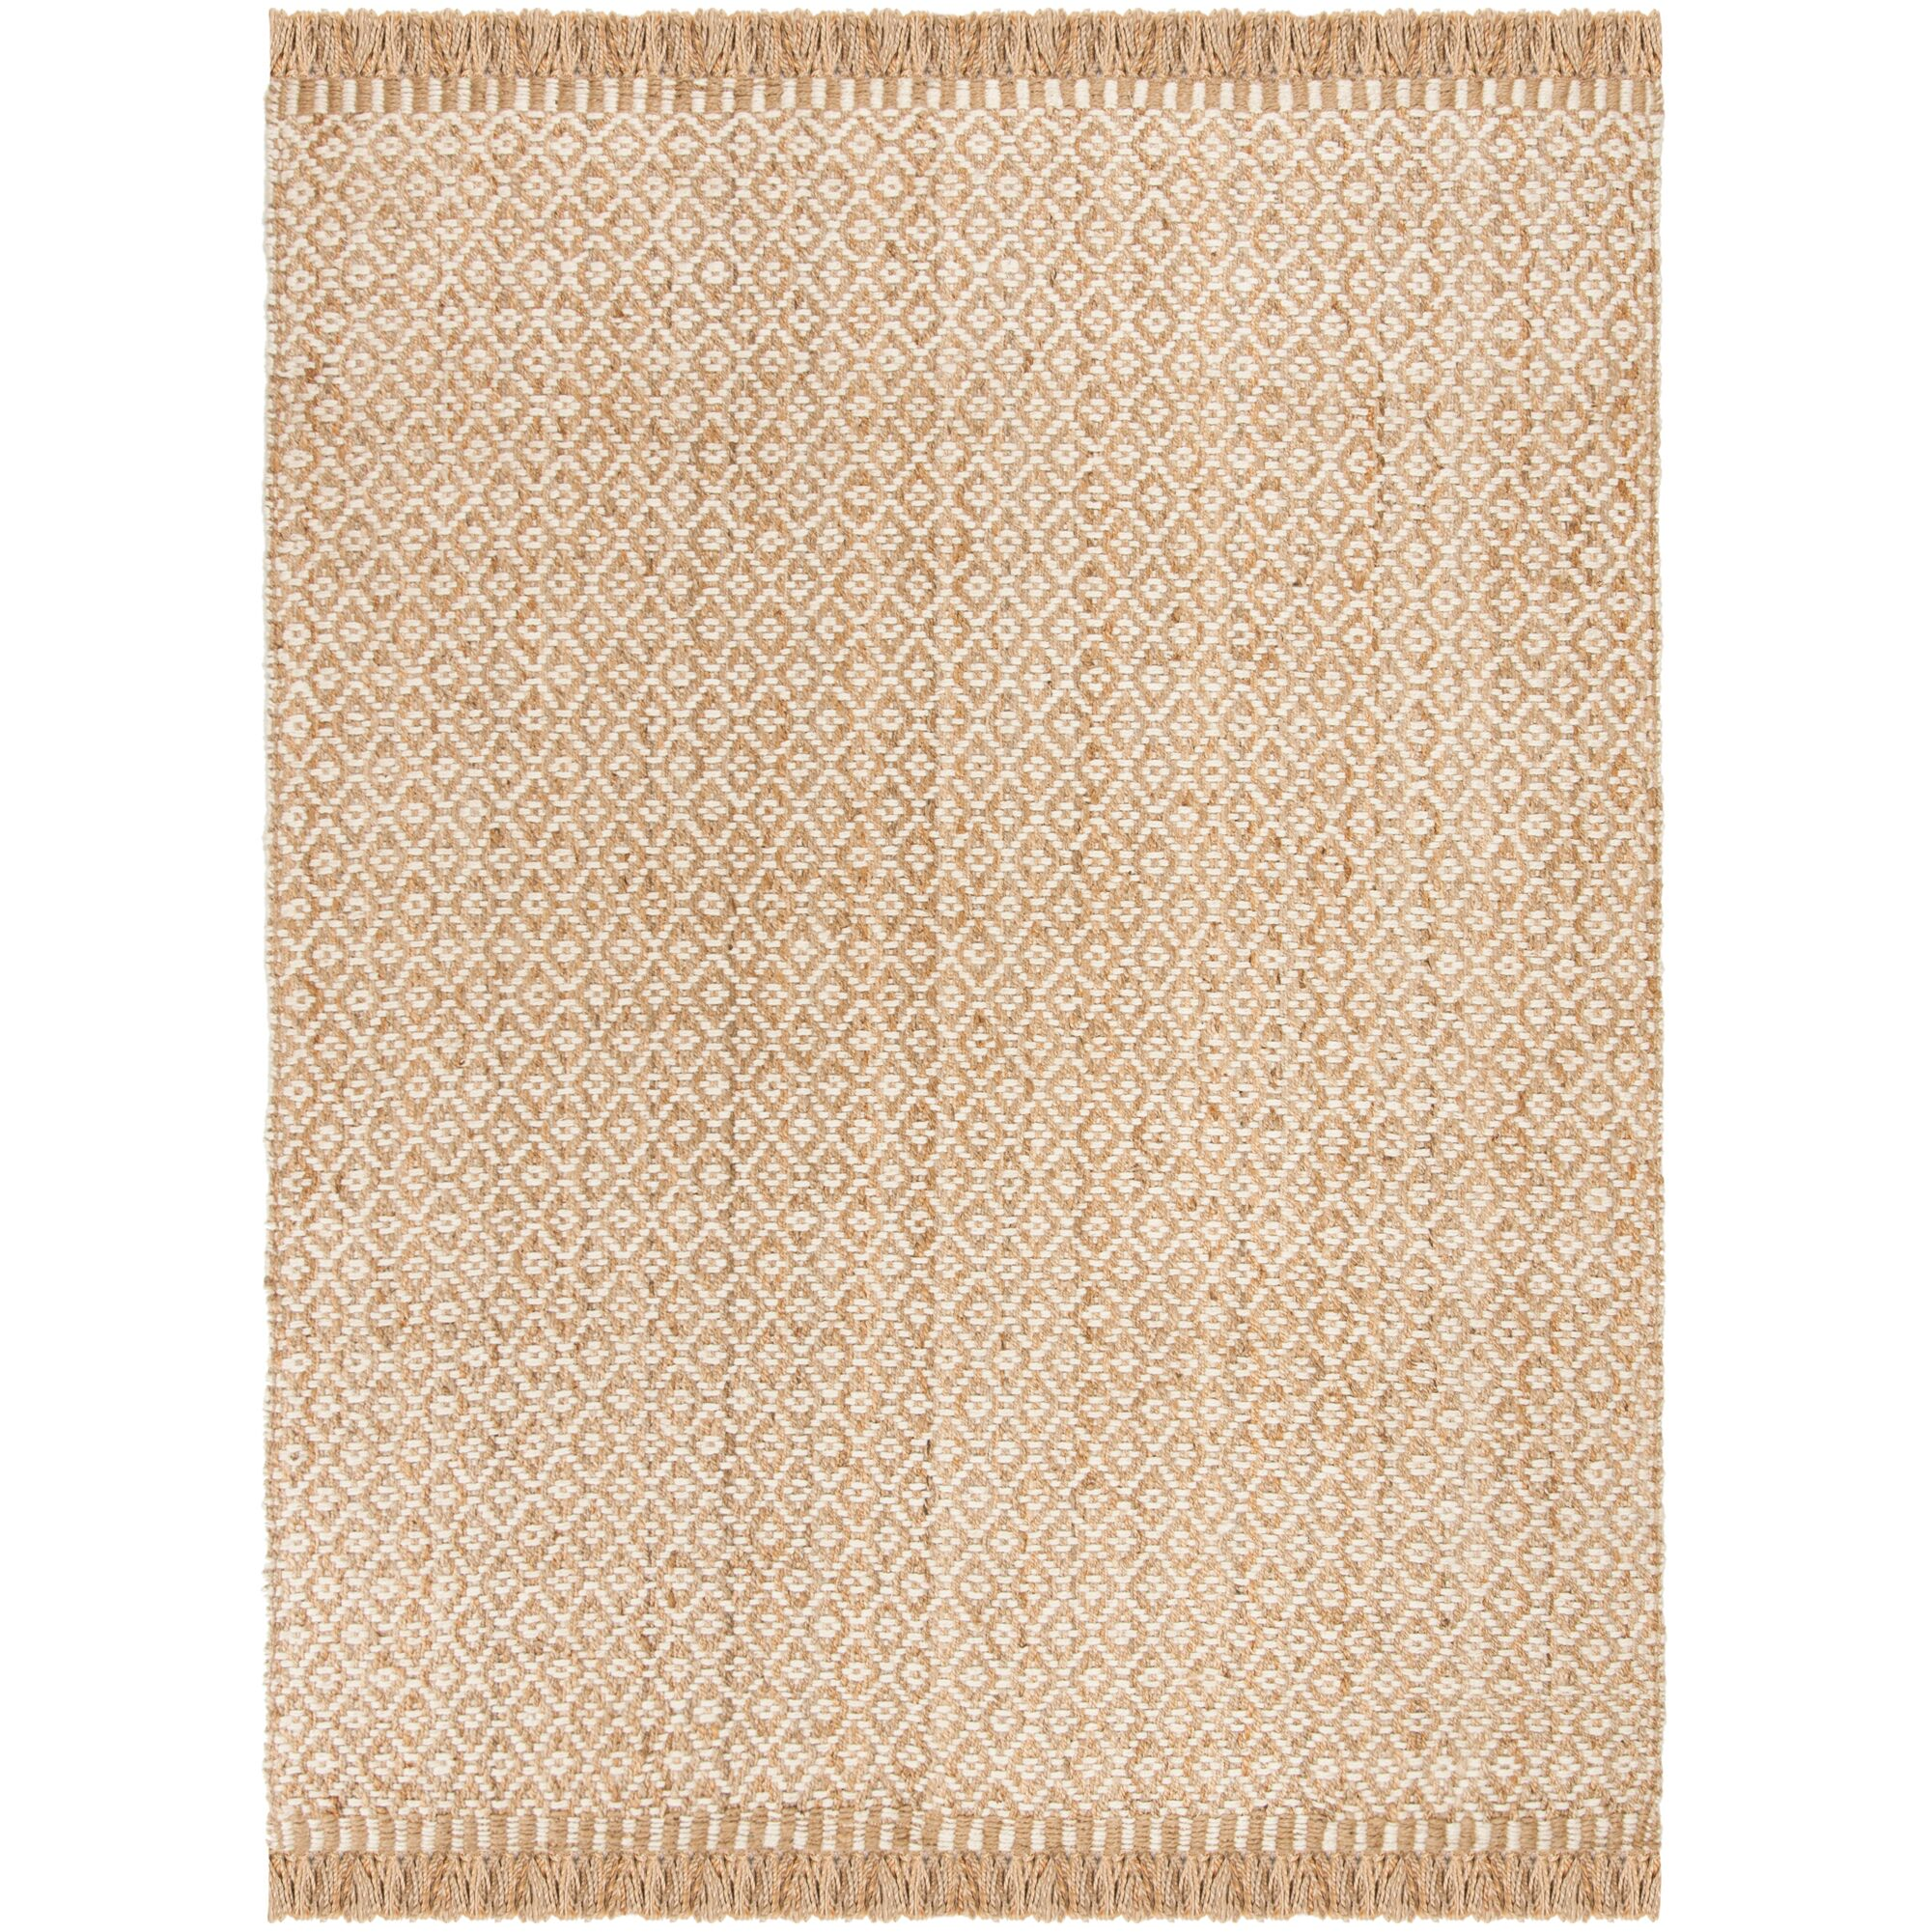 Nicholson Fiber Hand-Woven Natural/Ivory Area Rug Rug Size: Rectangle 8' x 10'